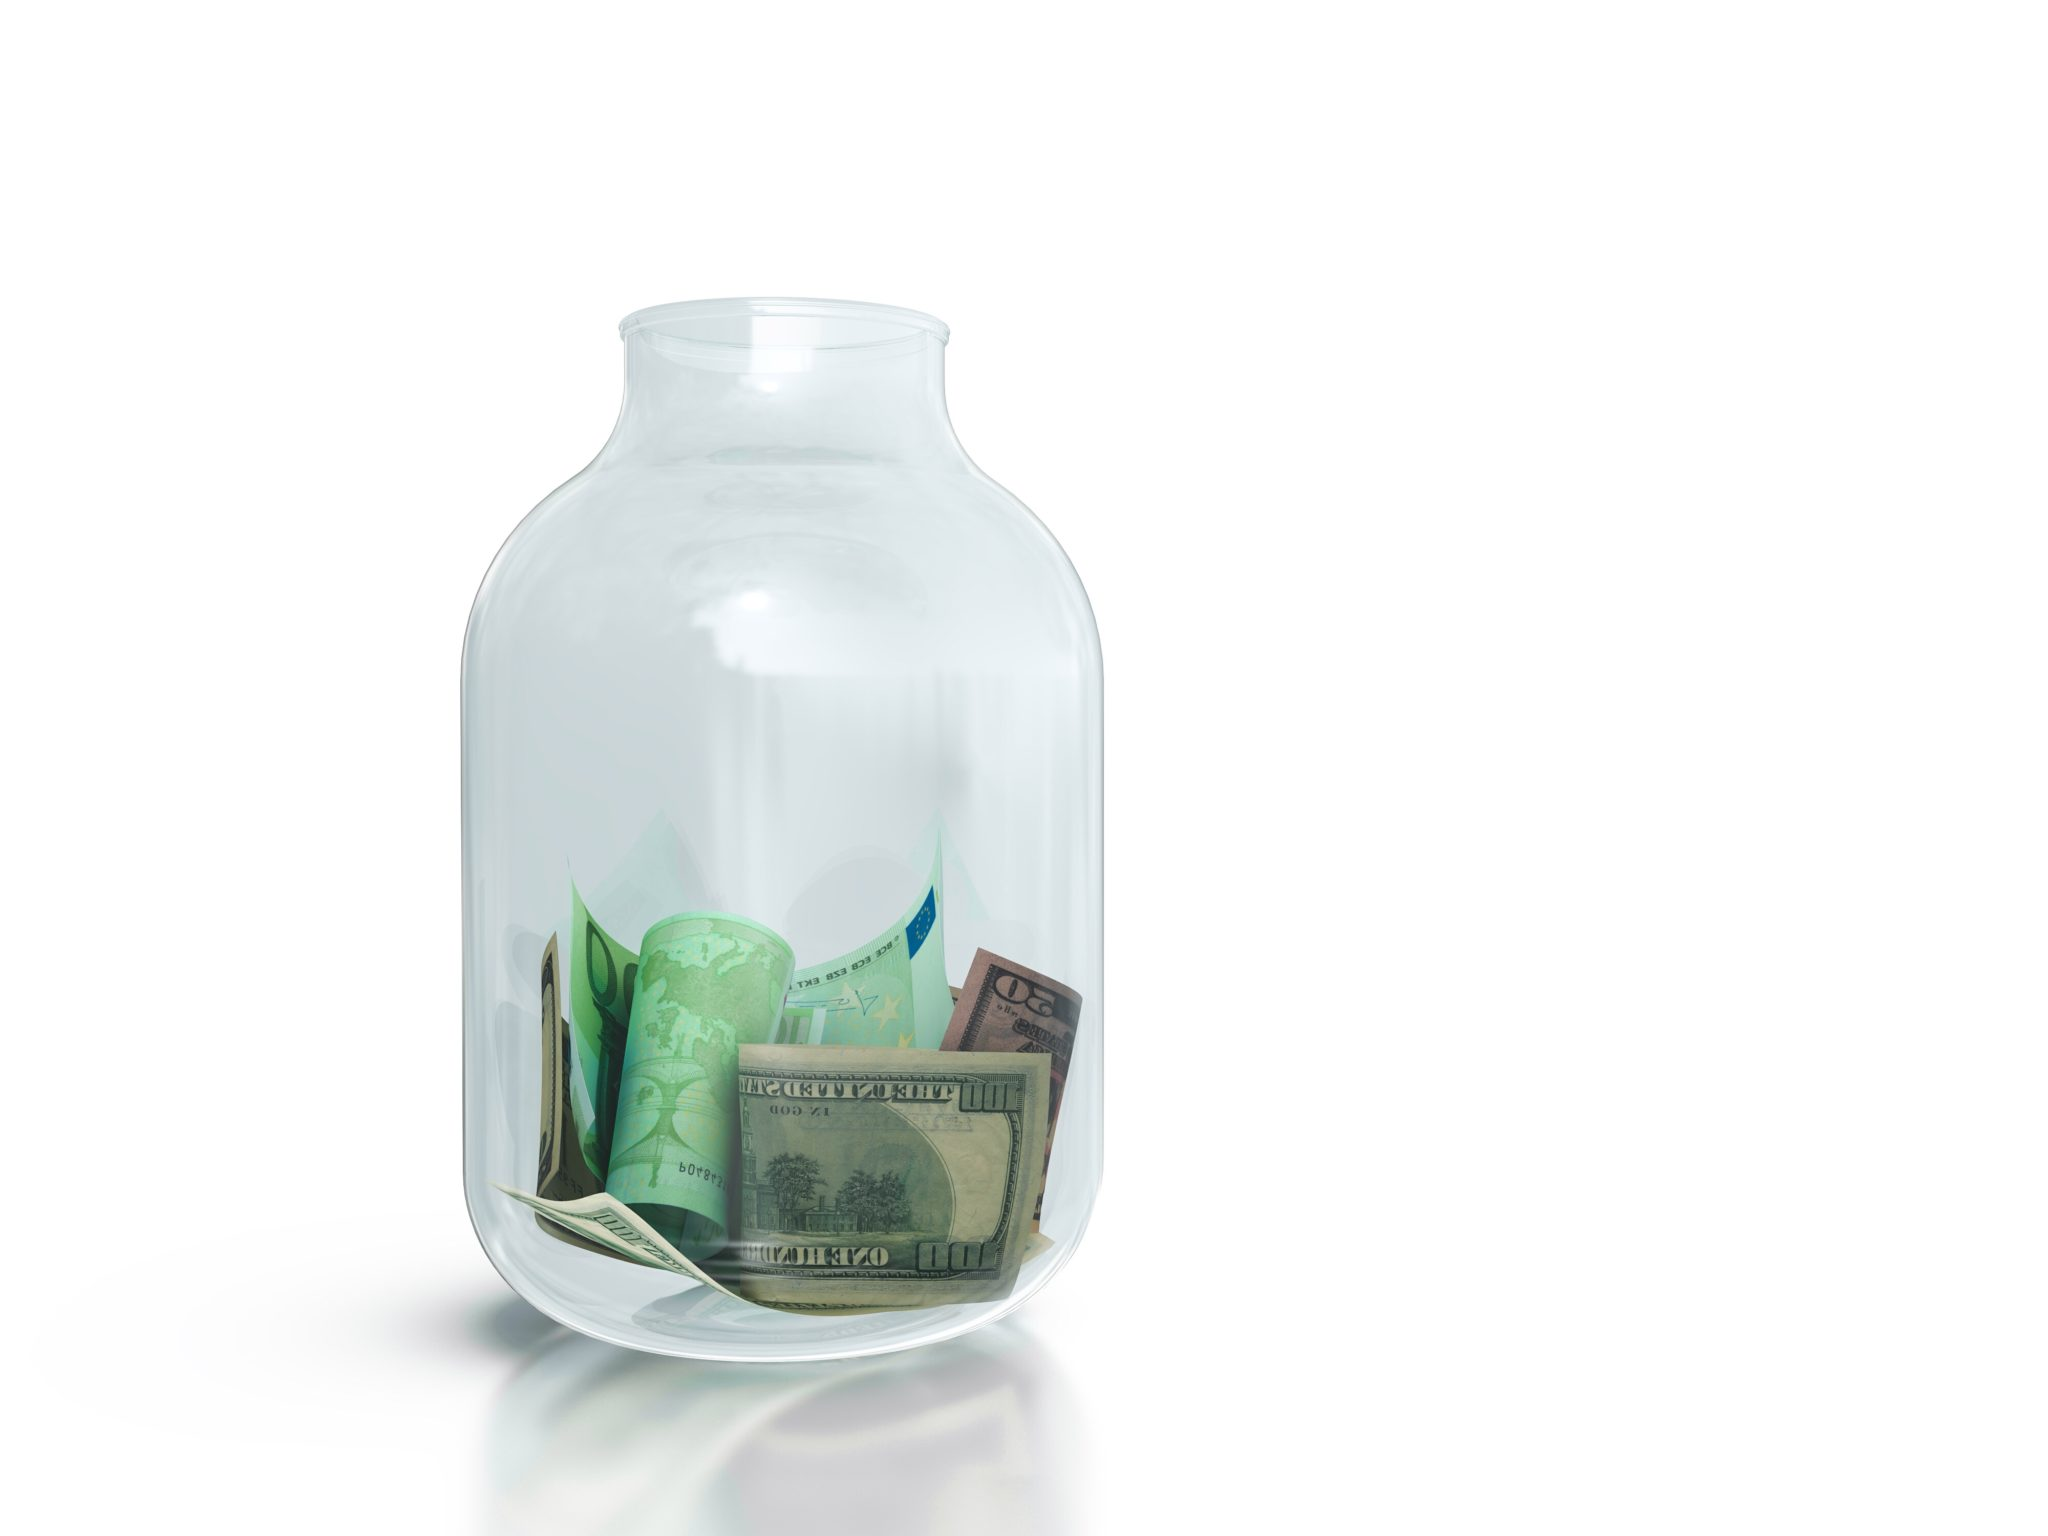 Donation jar with money.